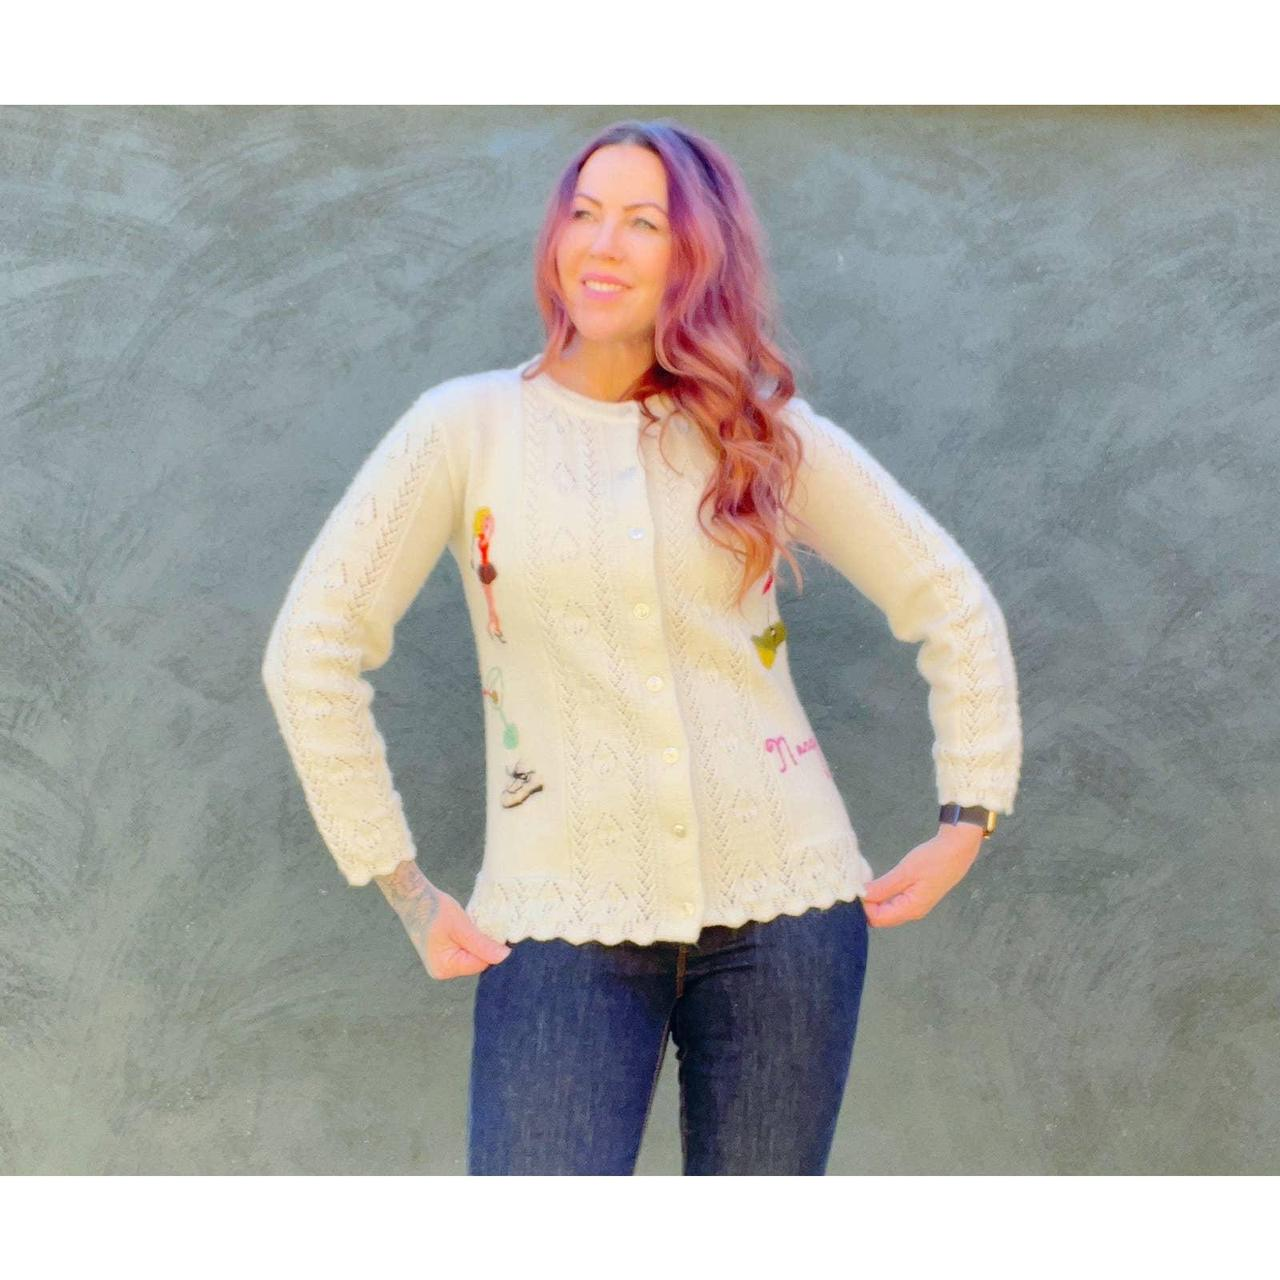 Product Image 1 - Vintage sweater from the 1960s